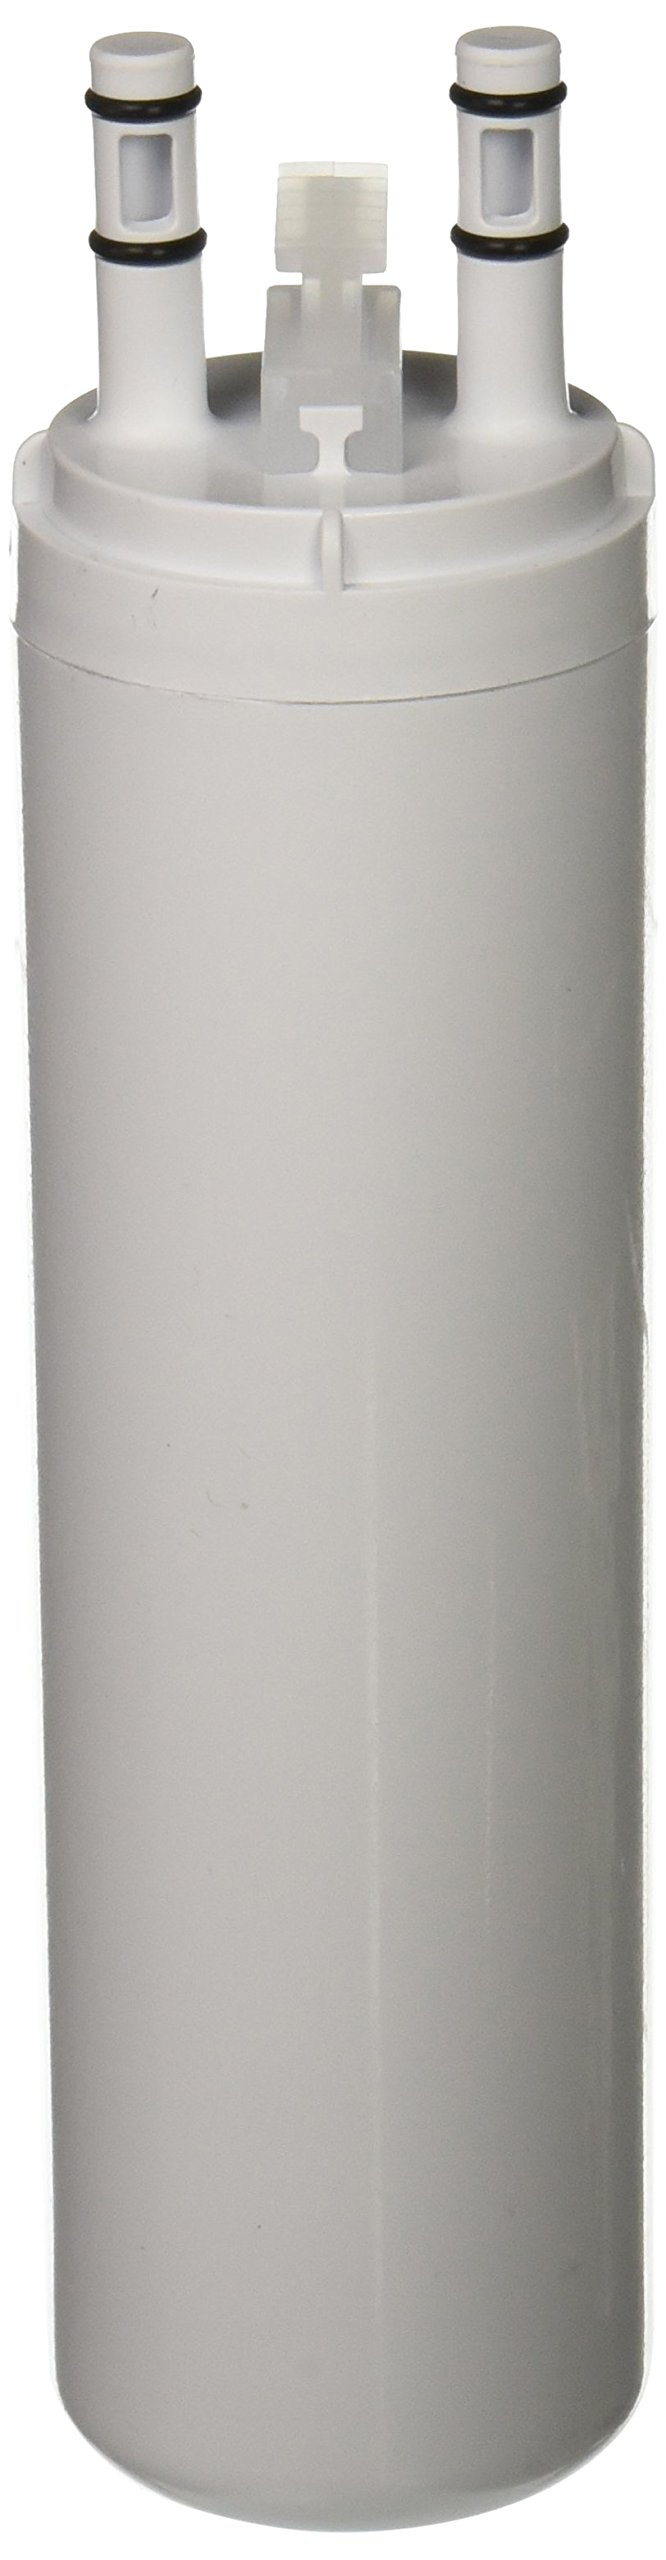 Frigidaire PureSource Ultra Refrigerator Water Filter (ULTRAWF), (Pack of 3) by Frigidaire